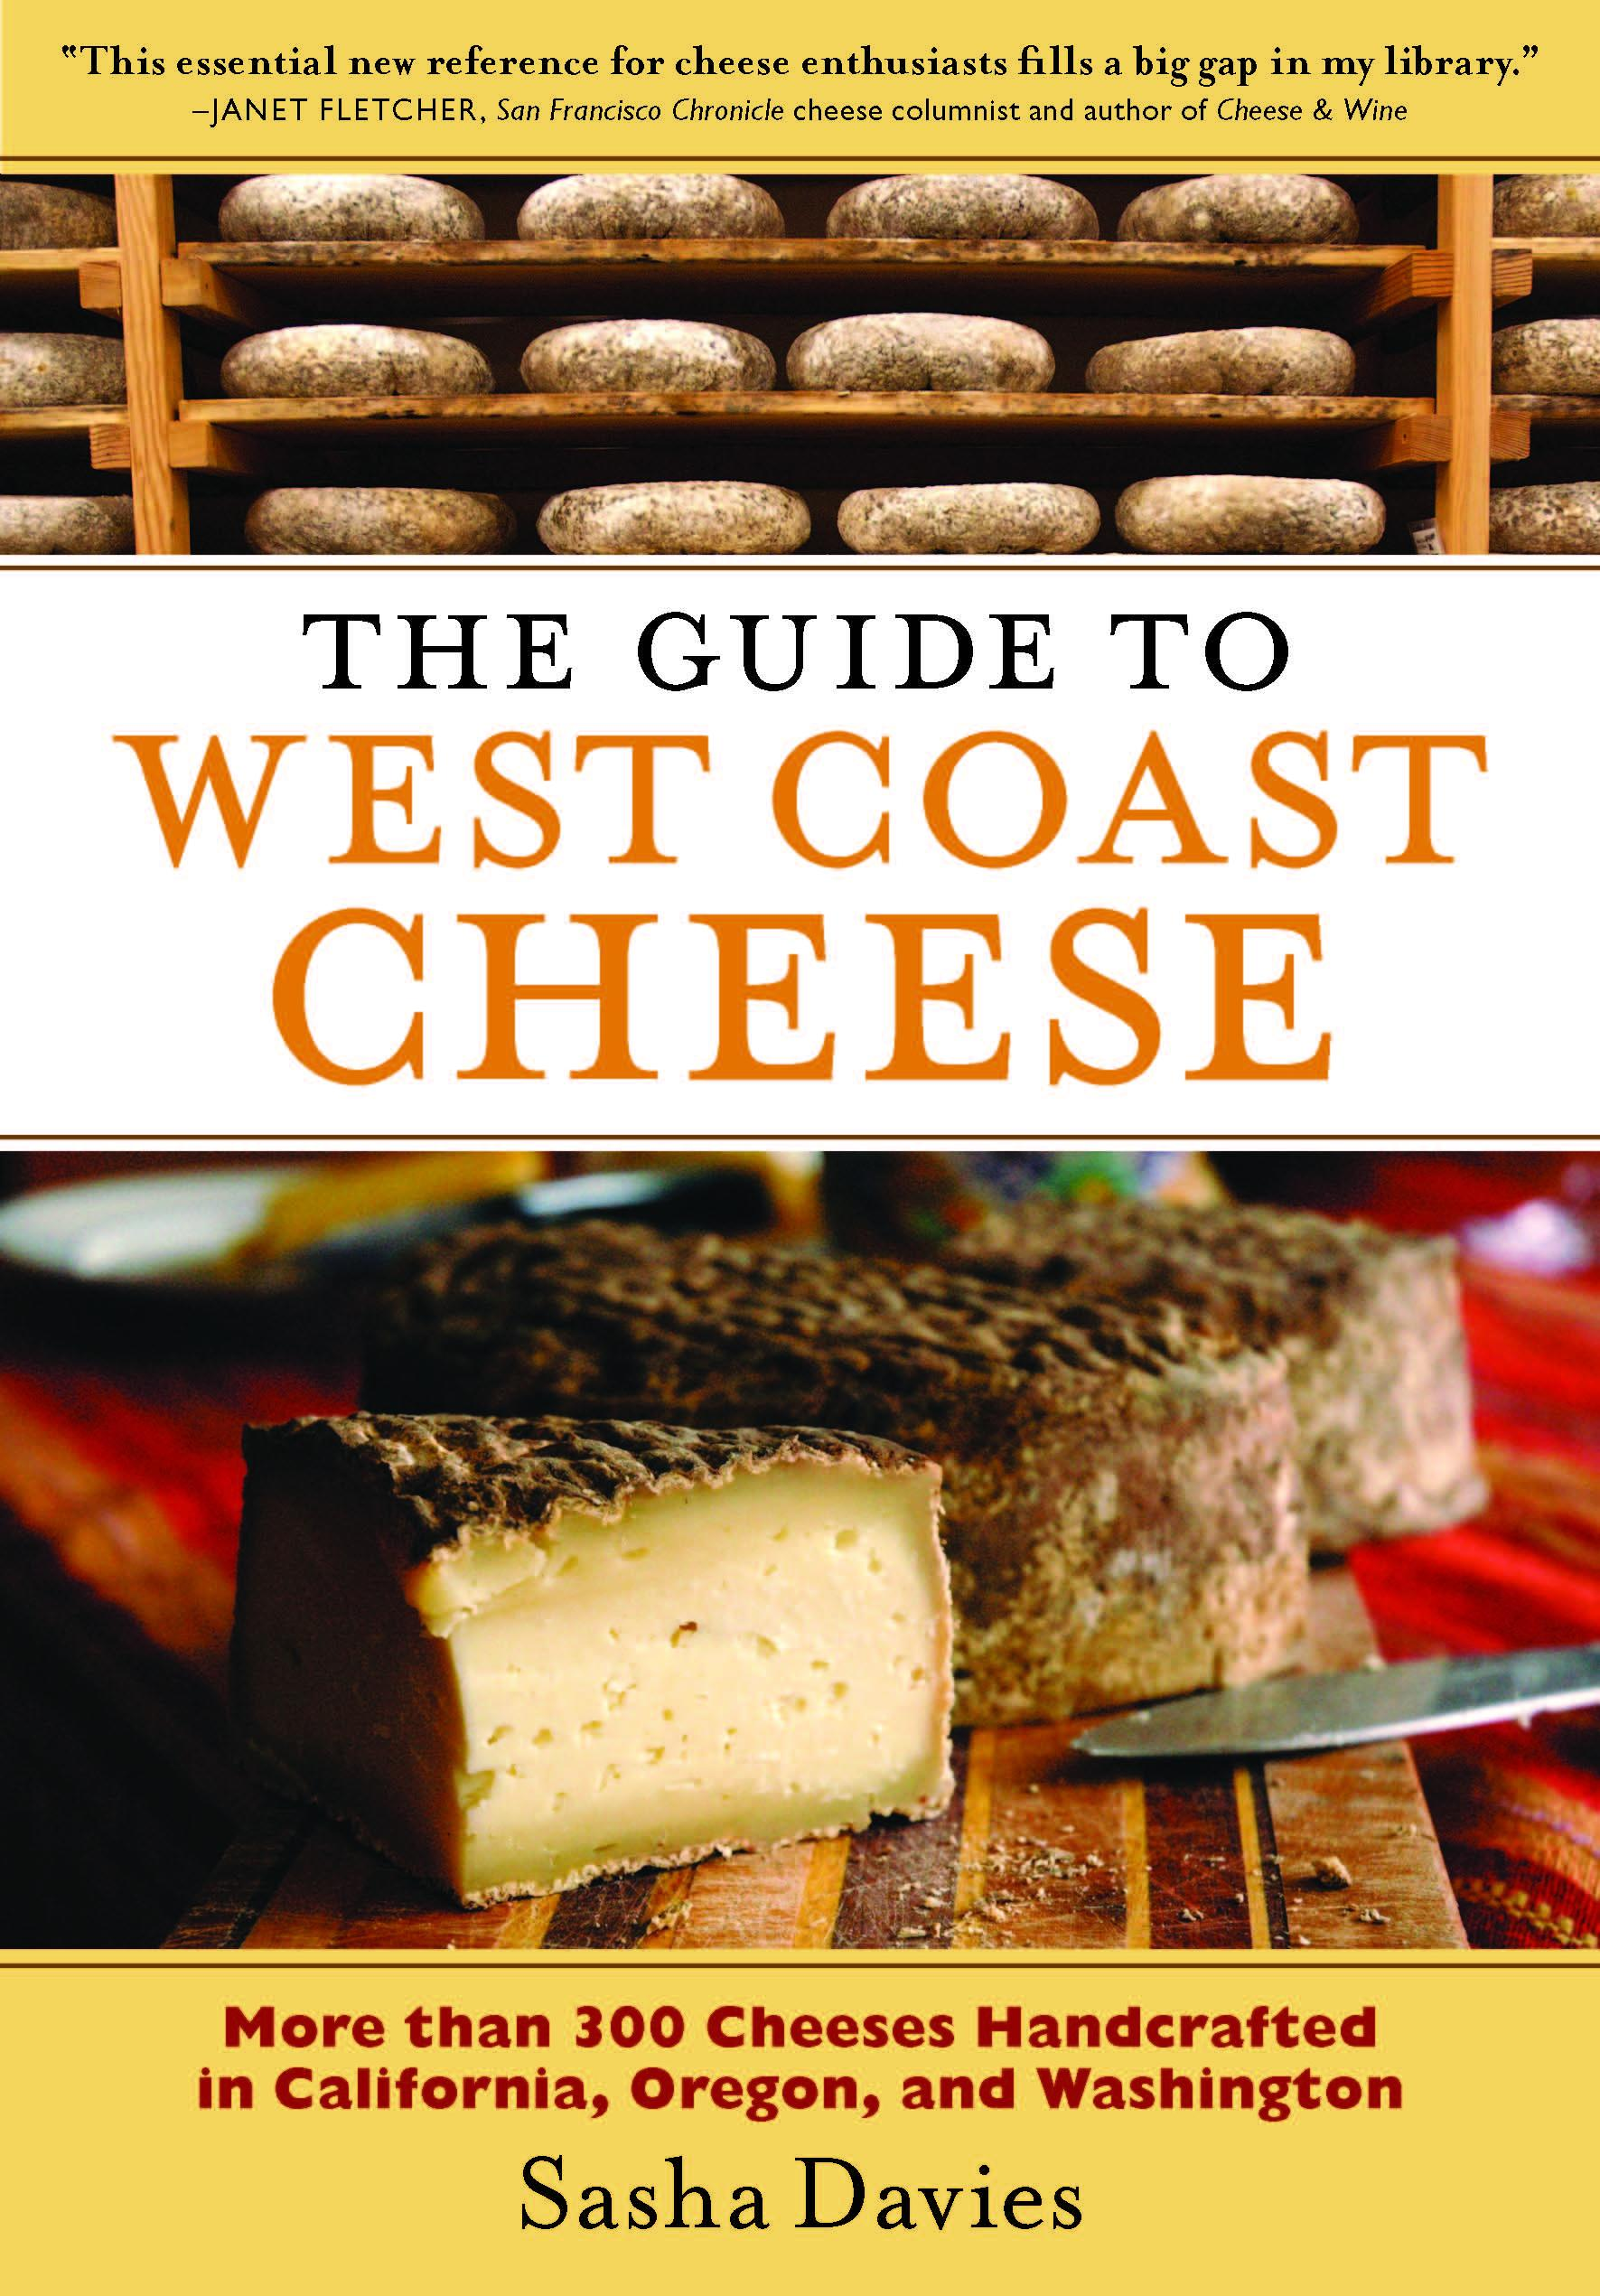 The Guide to West Coast Cheese: More than 300 Cheeses Handcrafted in California, Oregon, and Washington EB9781604692587